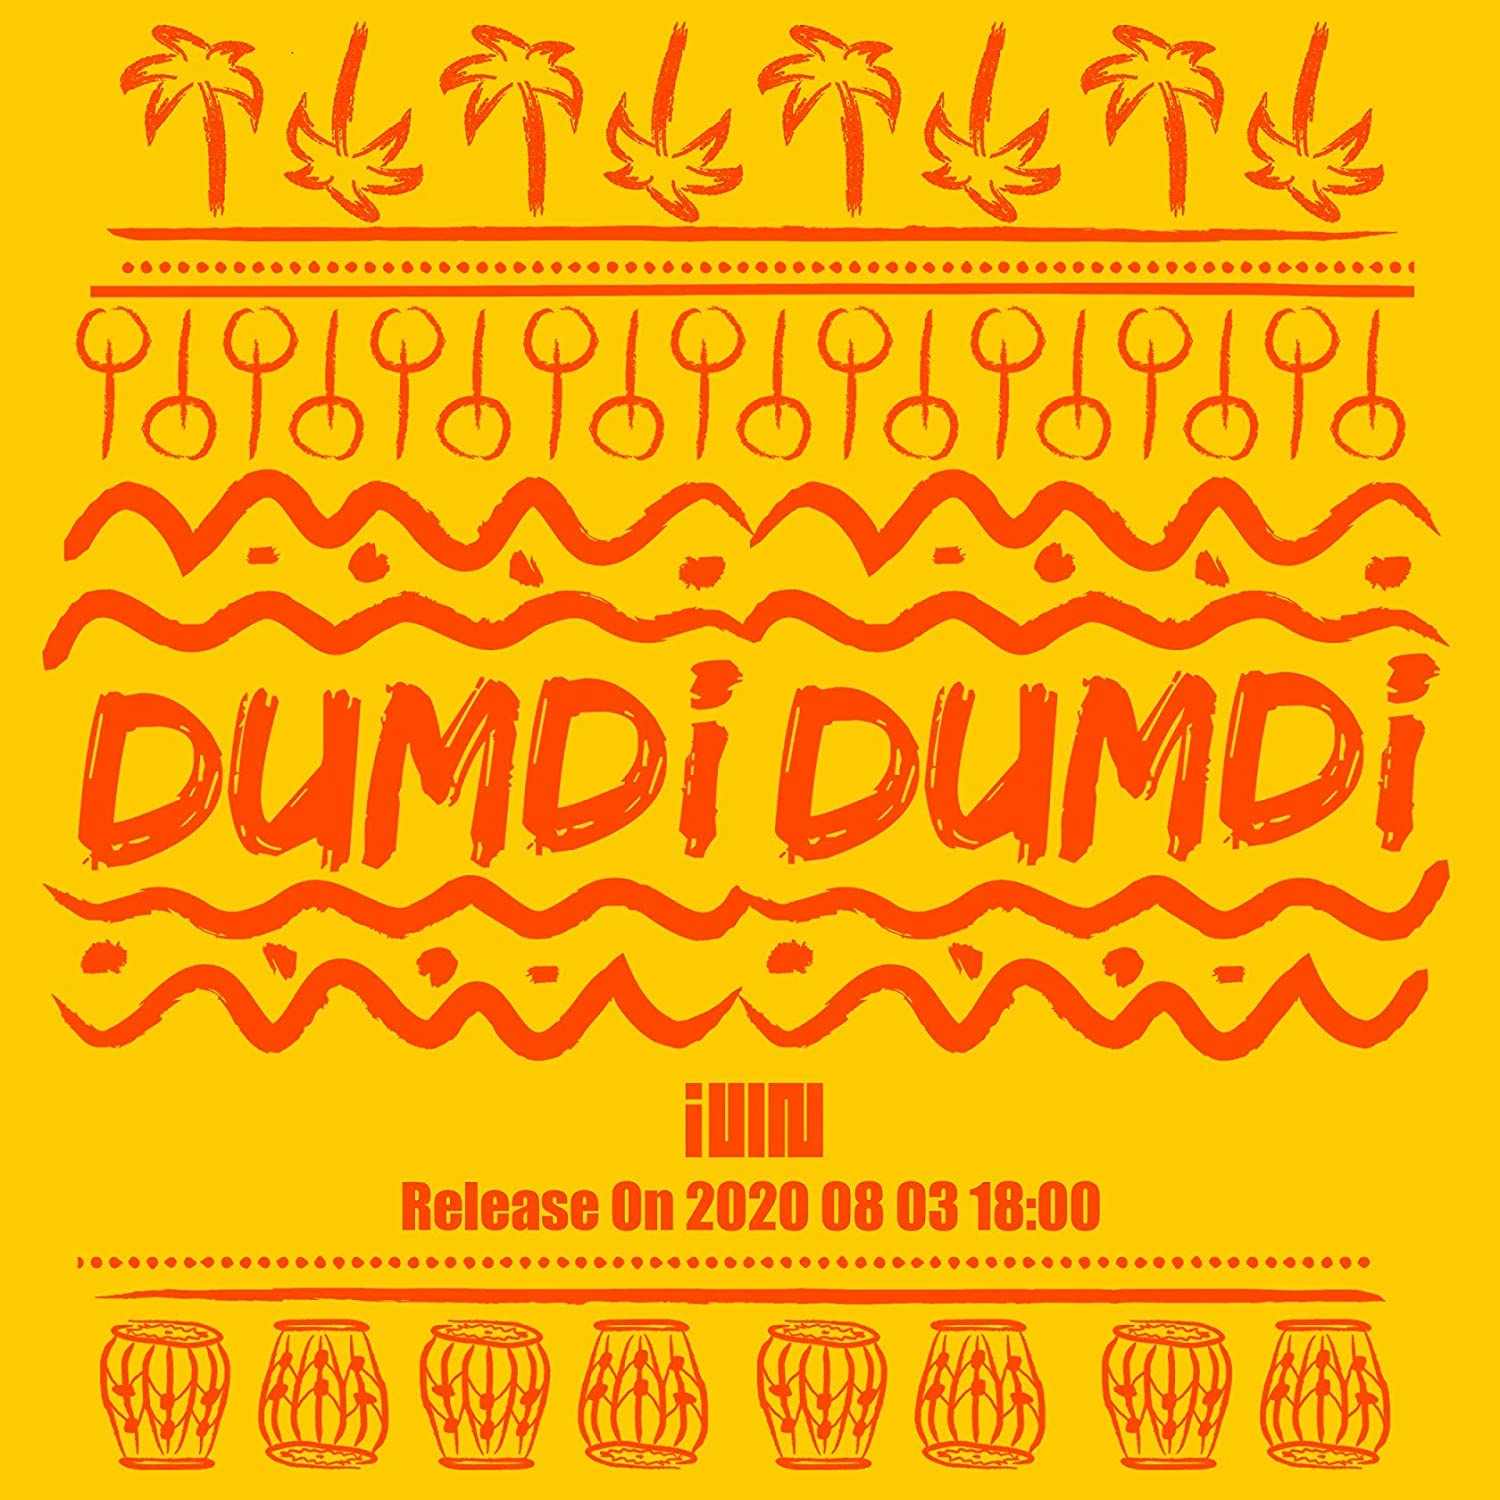 Audio Cd (G)I-Dle - Dumdi Dumd (Single Album) Night Ver. NUOVO SIGILLATO, EDIZIONE DEL 04/08/2020 SUBITO DISPONIBILE